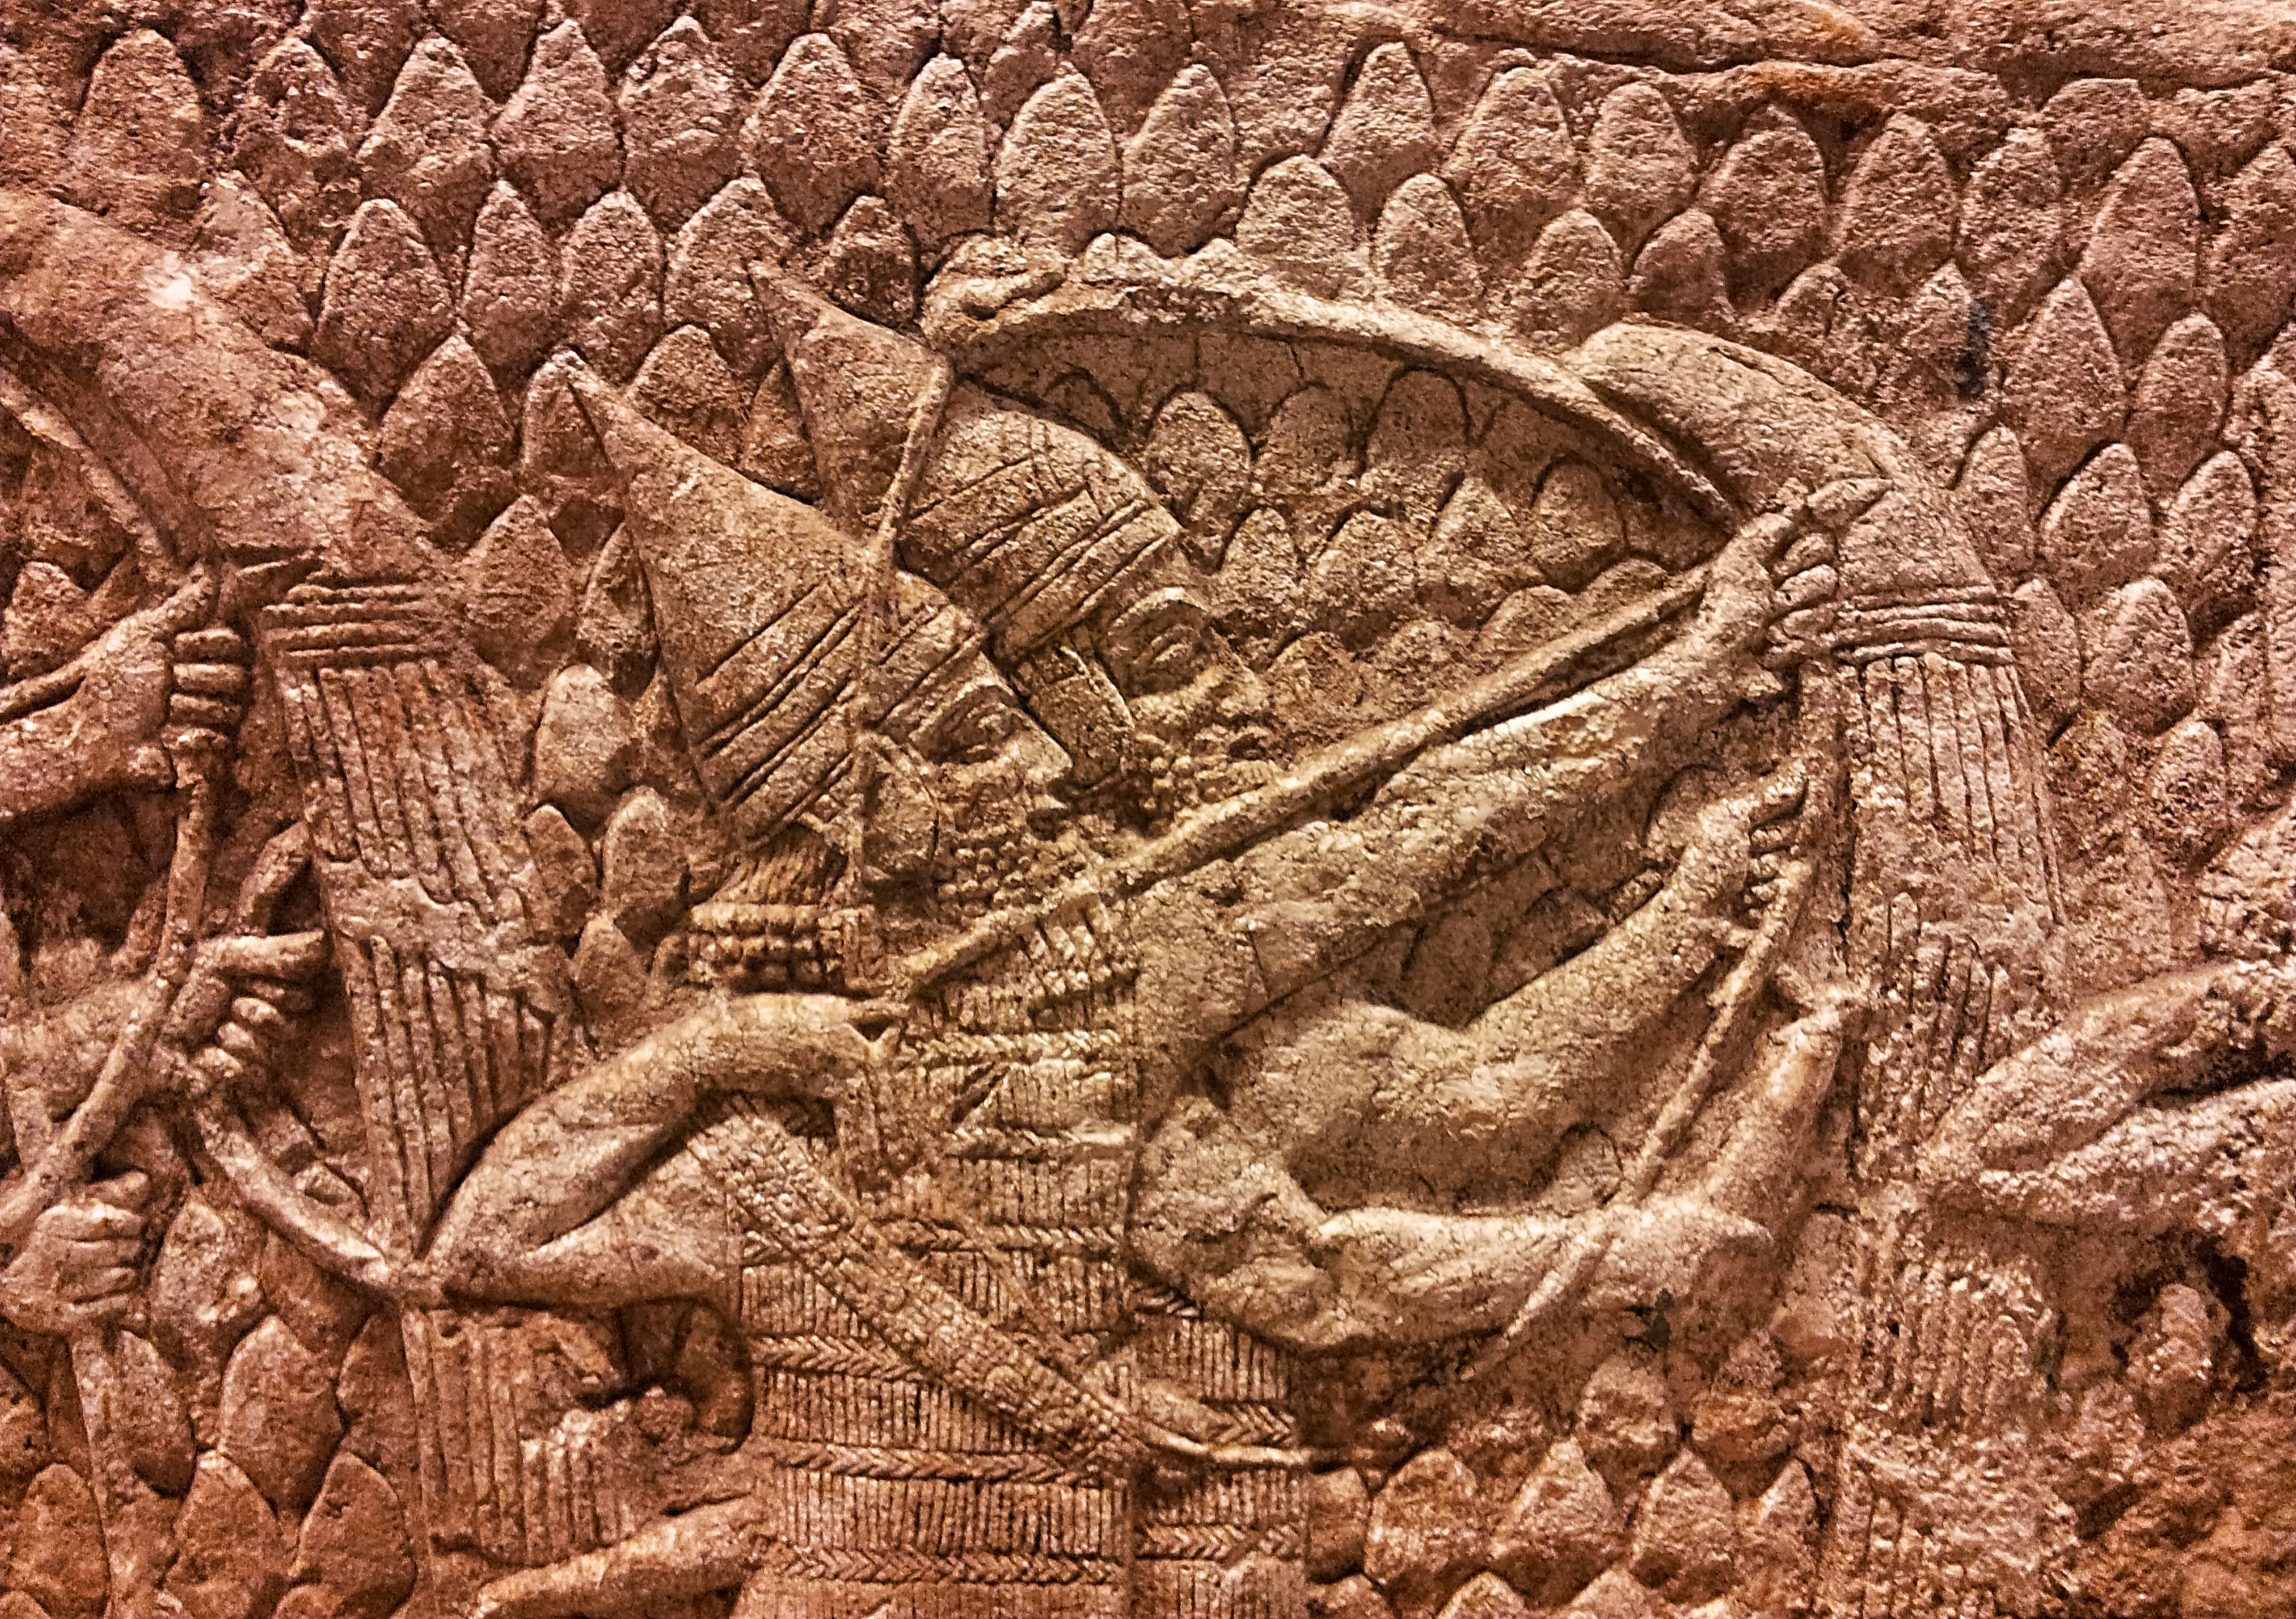 Assyrian relief of archers in battle